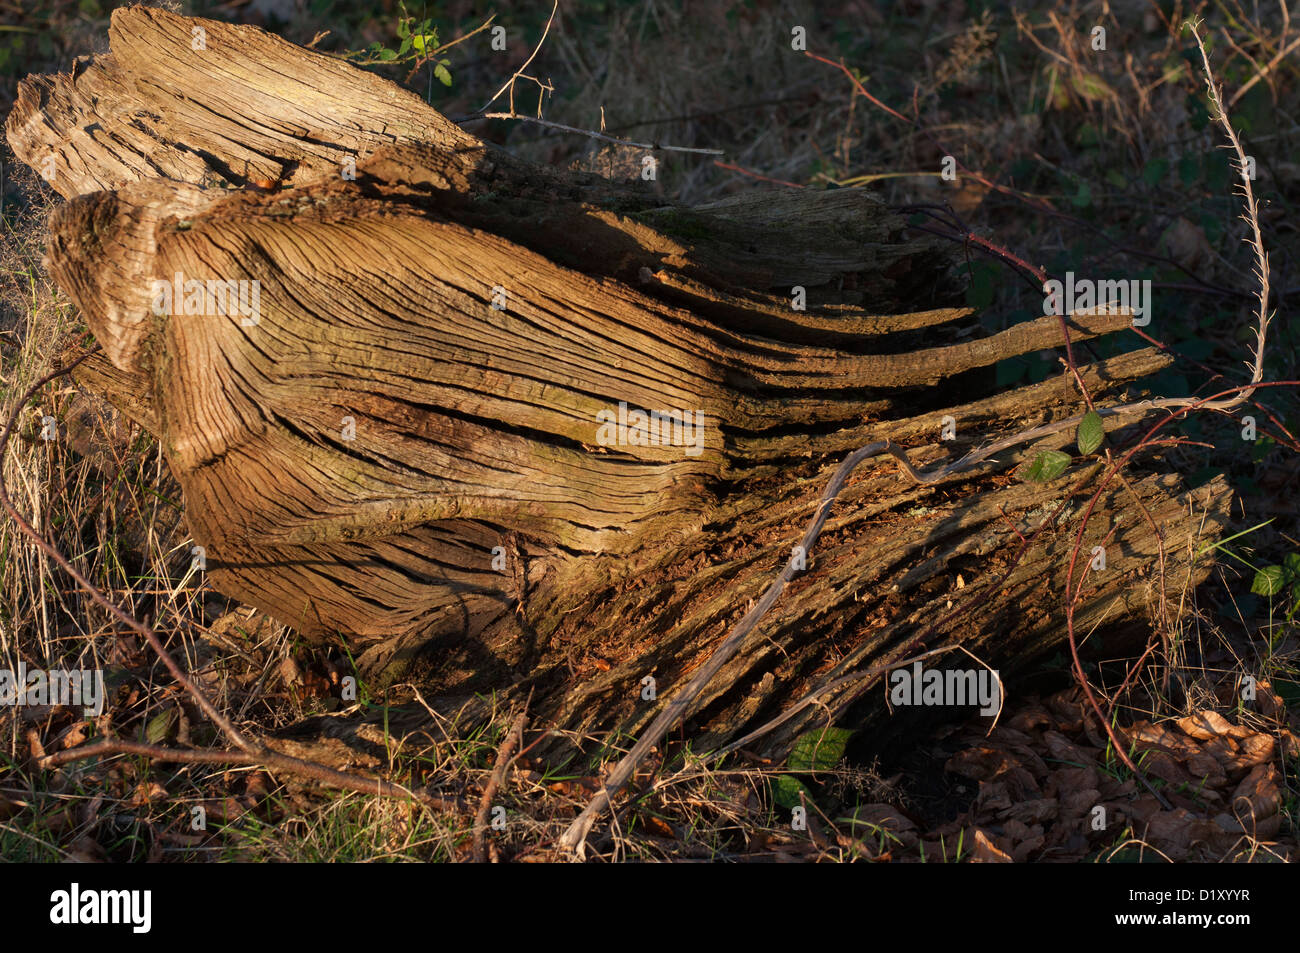 dead tree trunk, horizontal, textures, sidelit, forest, woodland, selective focus, shadows - Stock Image